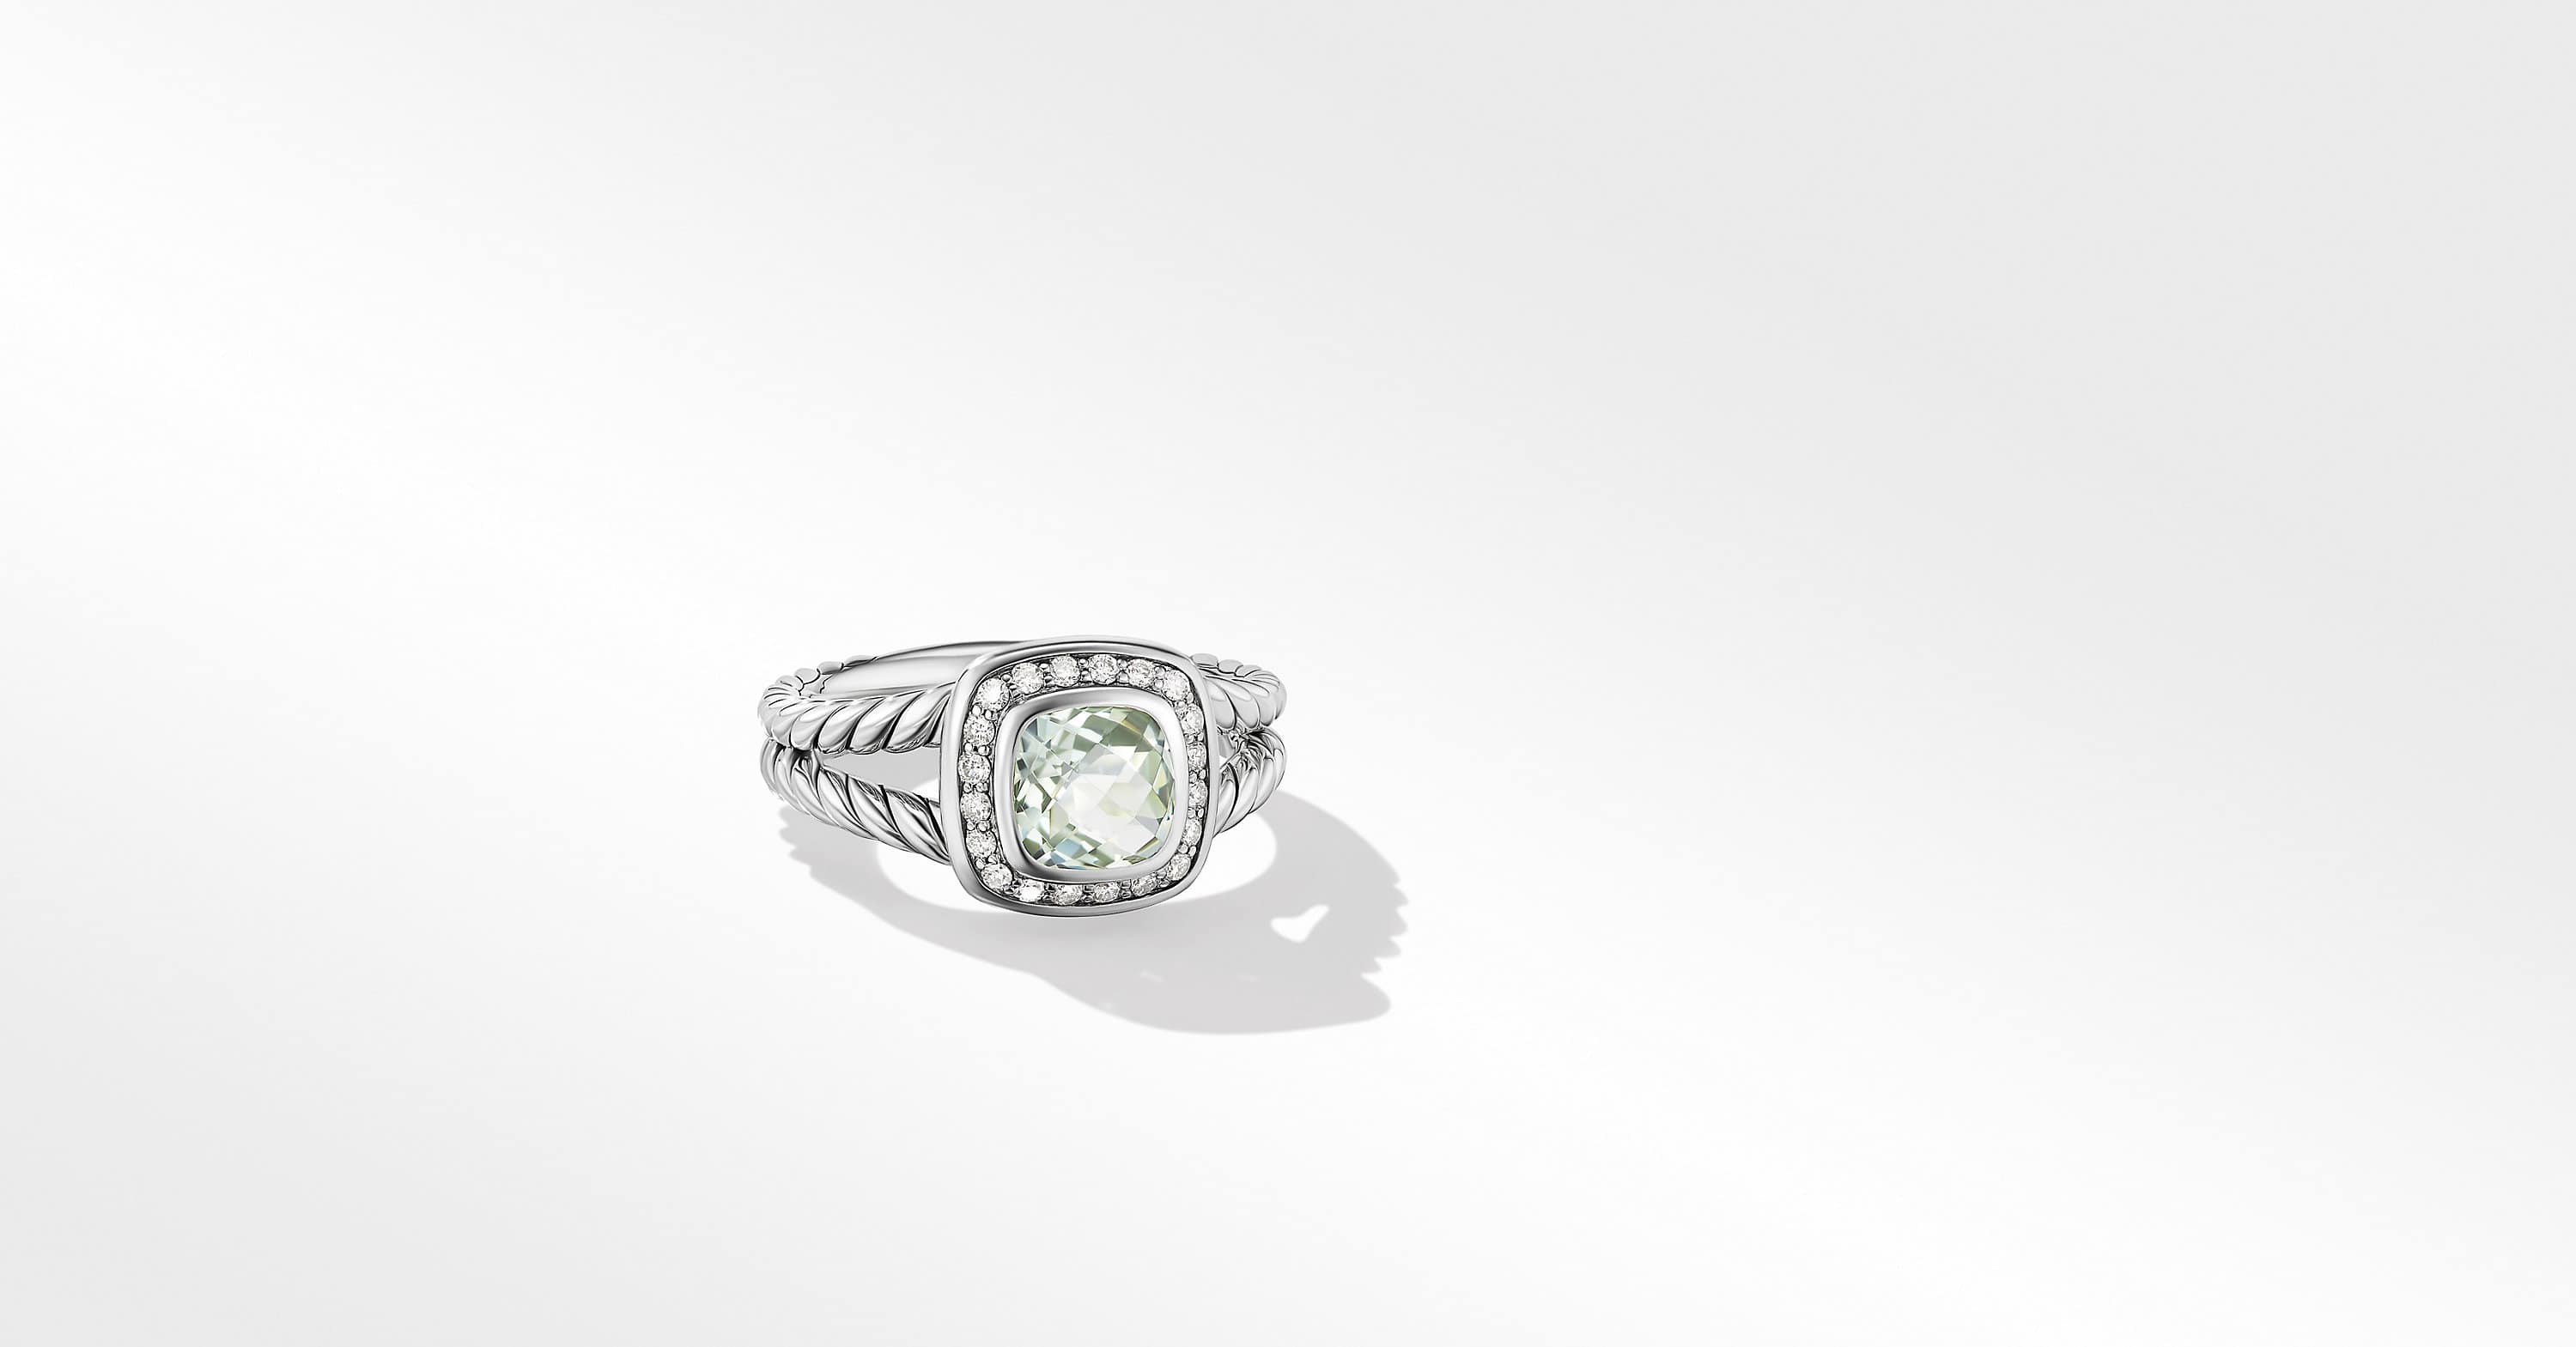 Petite Albion Ring with Diamonds, 7mm Gemstone